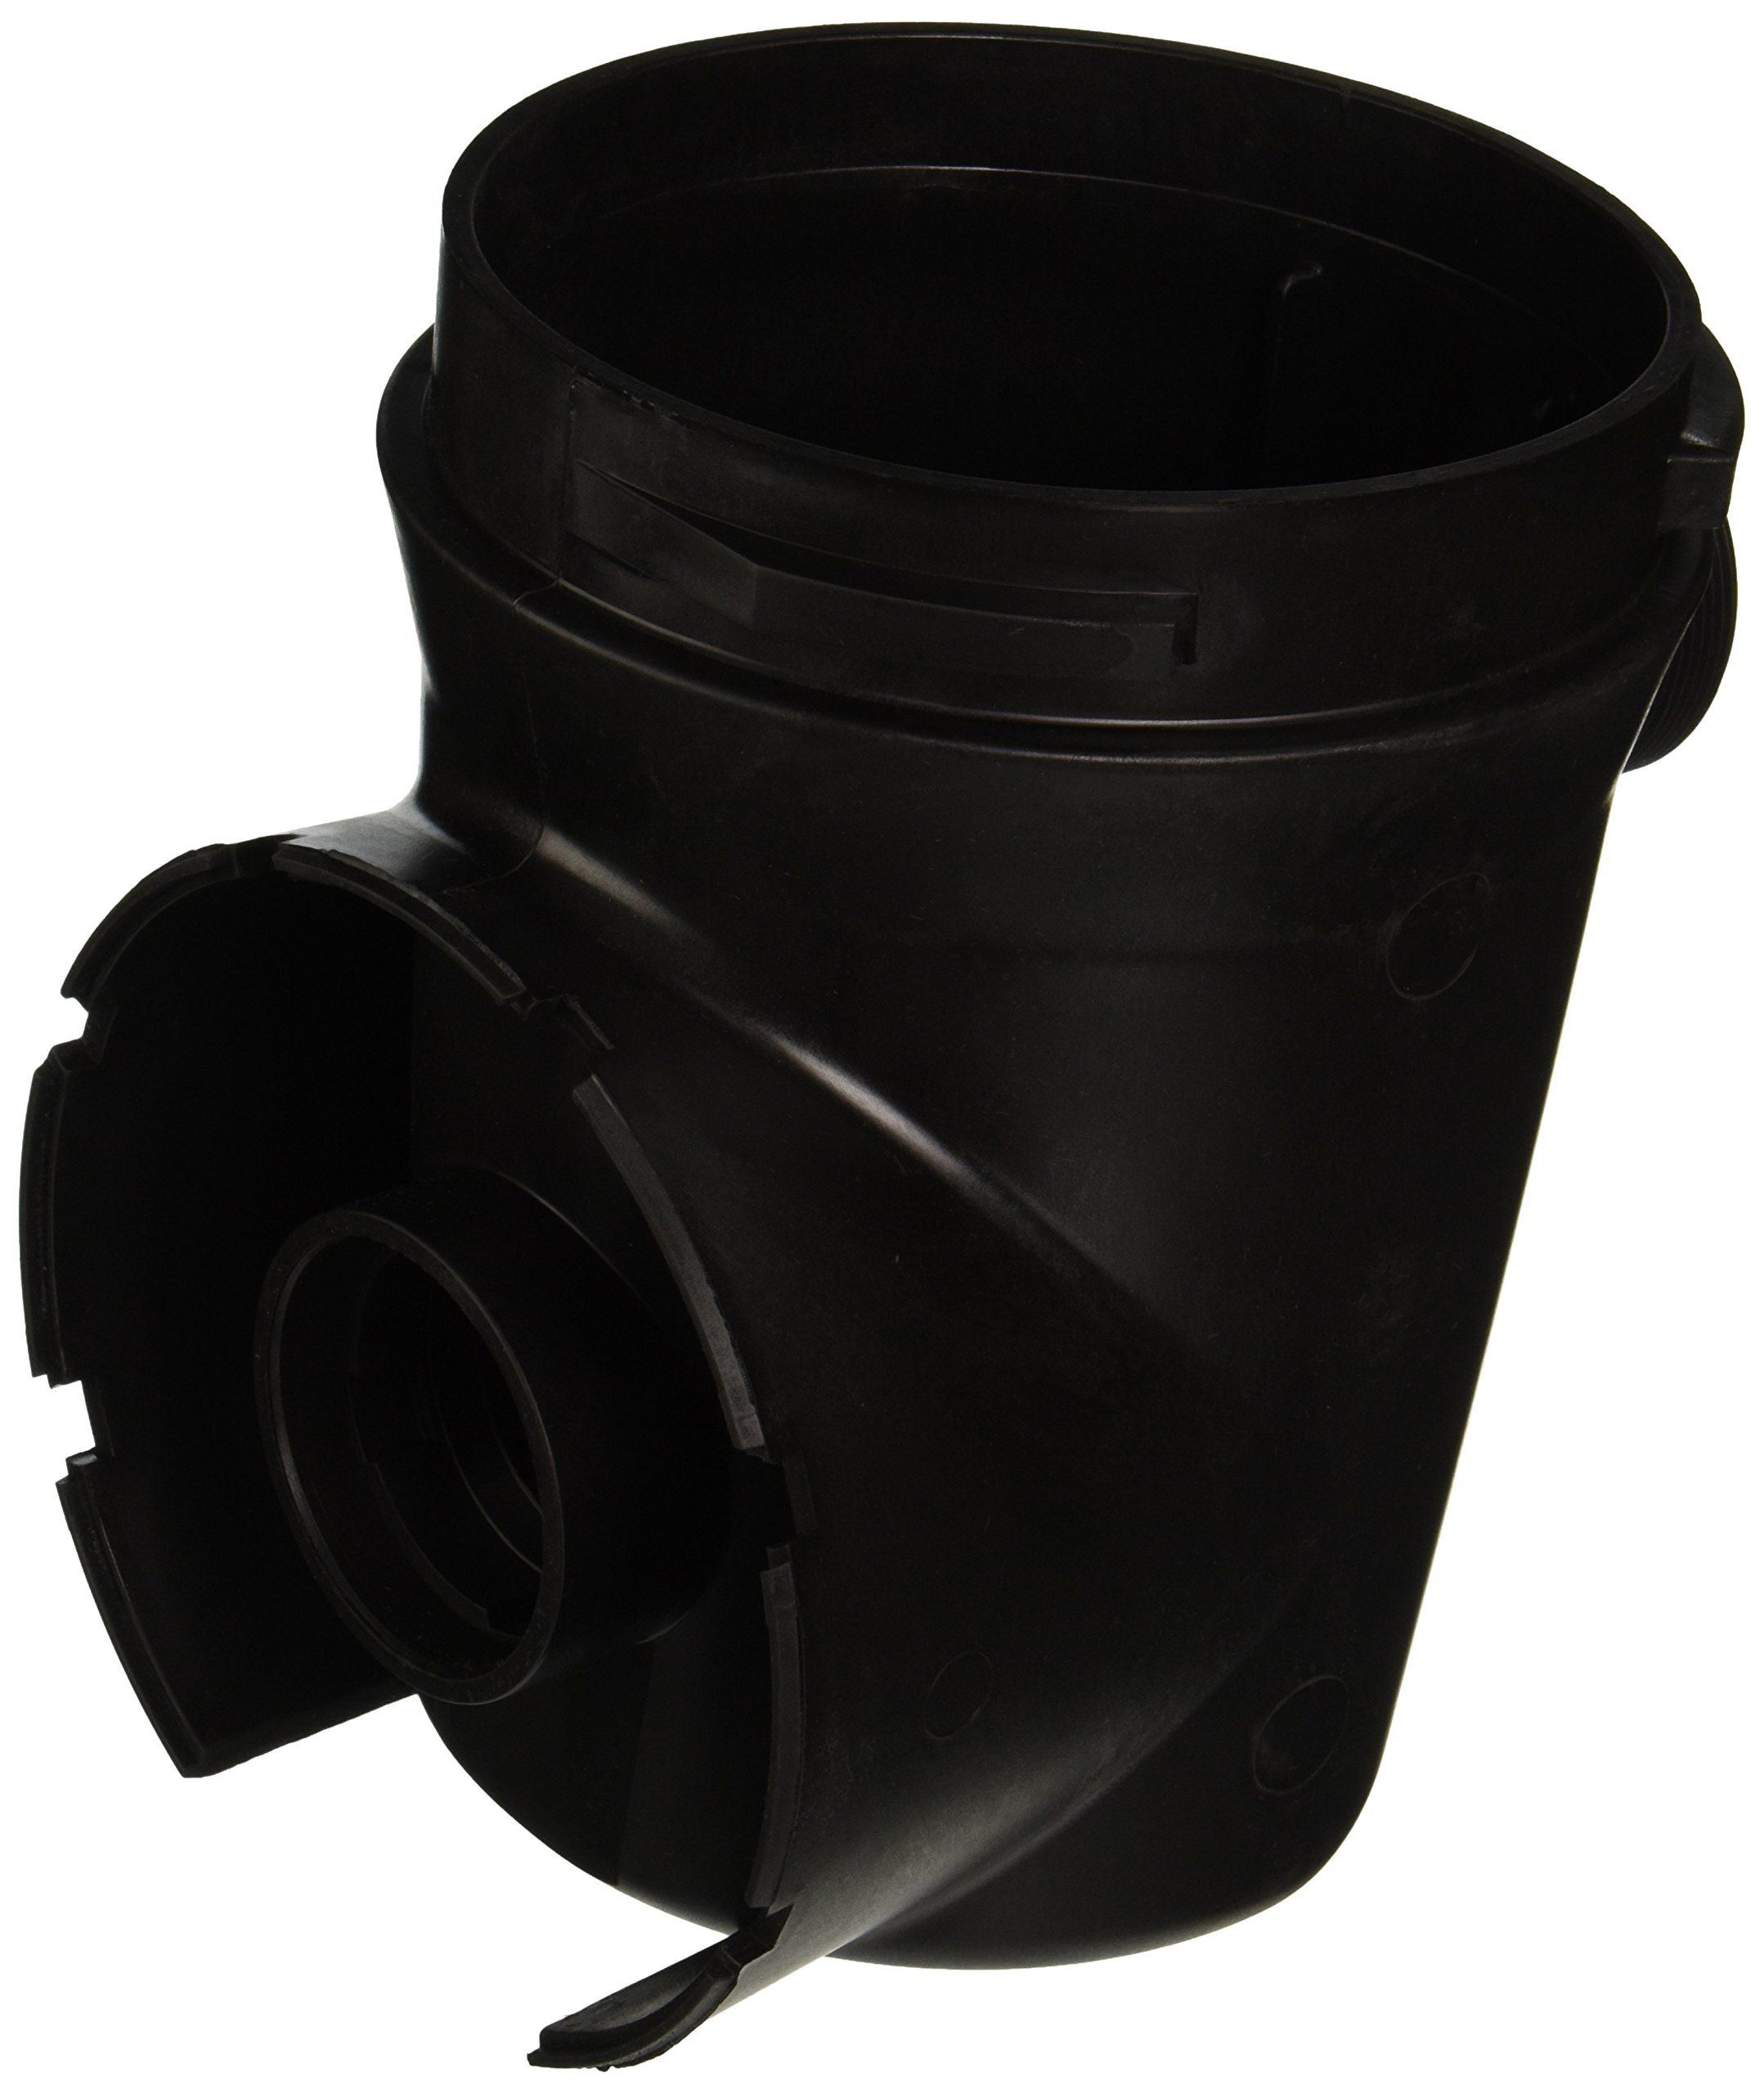 Hayward SPX5500C Strainer Housing Replacement for Select Hayward Pump and Filter by Hayward (Image #2)